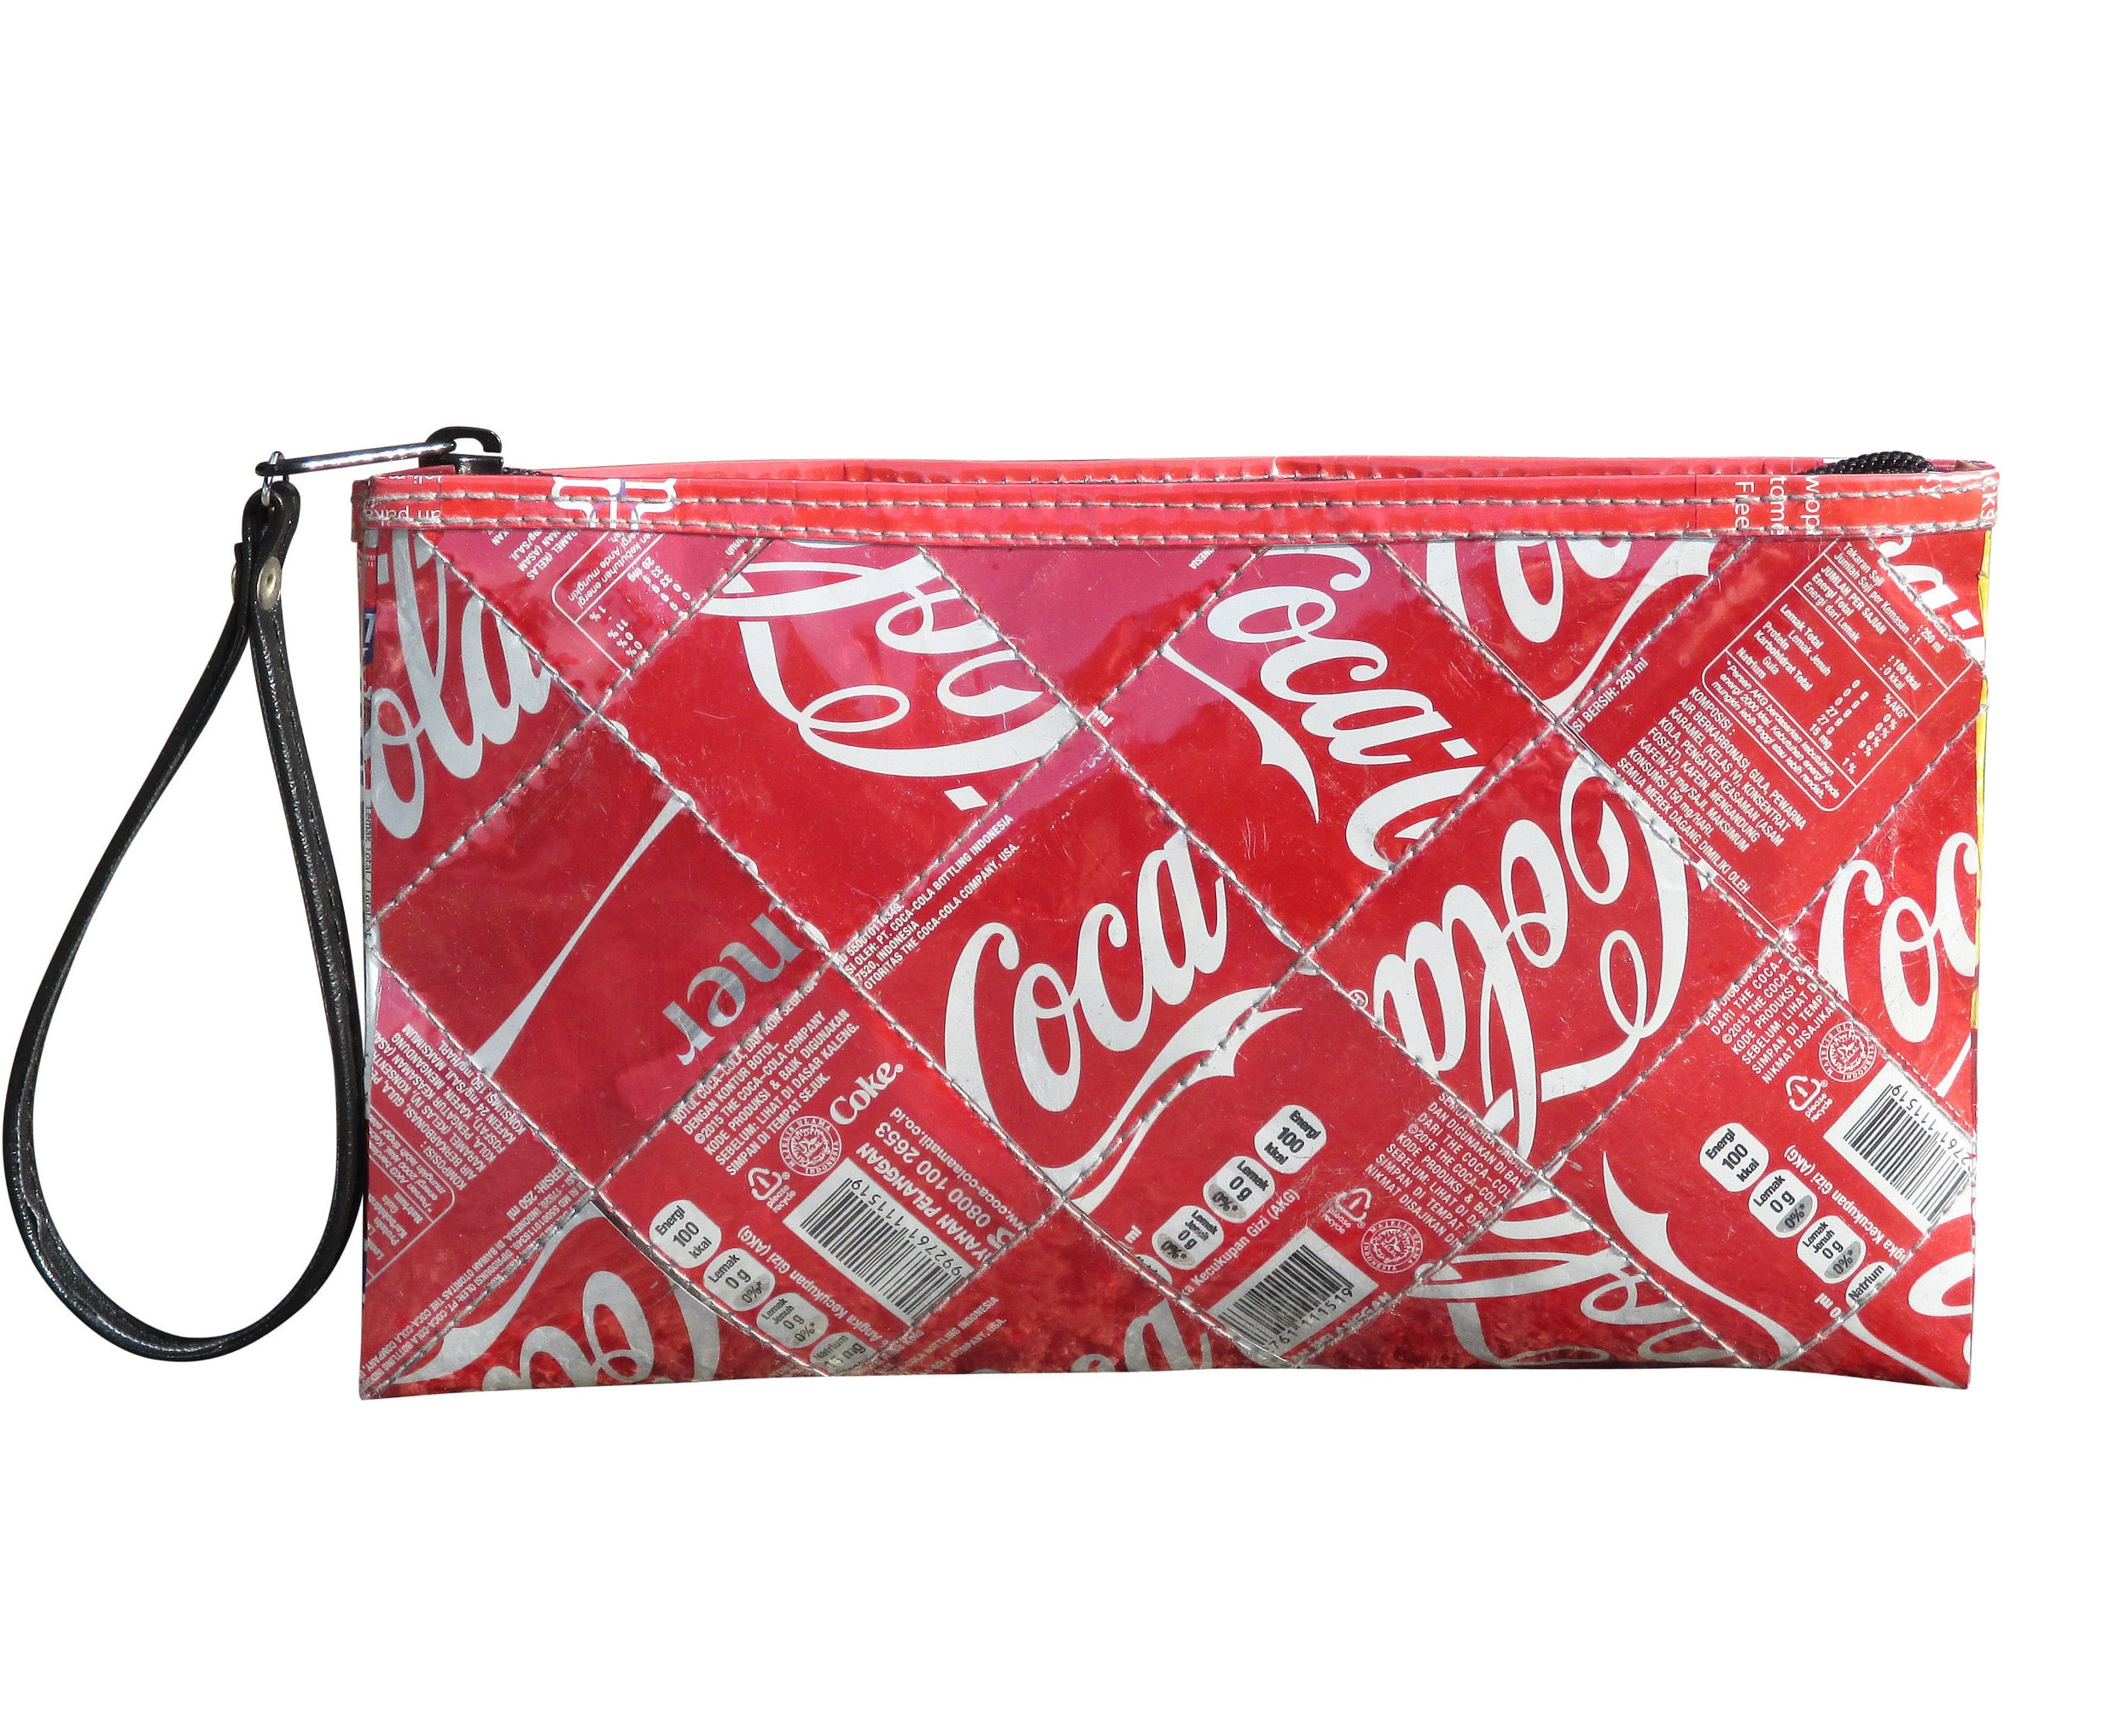 6f247c028e Large zip wristlet made from Coca Cola can FREE SHIPPING clutch wallet  zipper bag pouch reduce reuse recycled upcycle upcycled gift coke tin